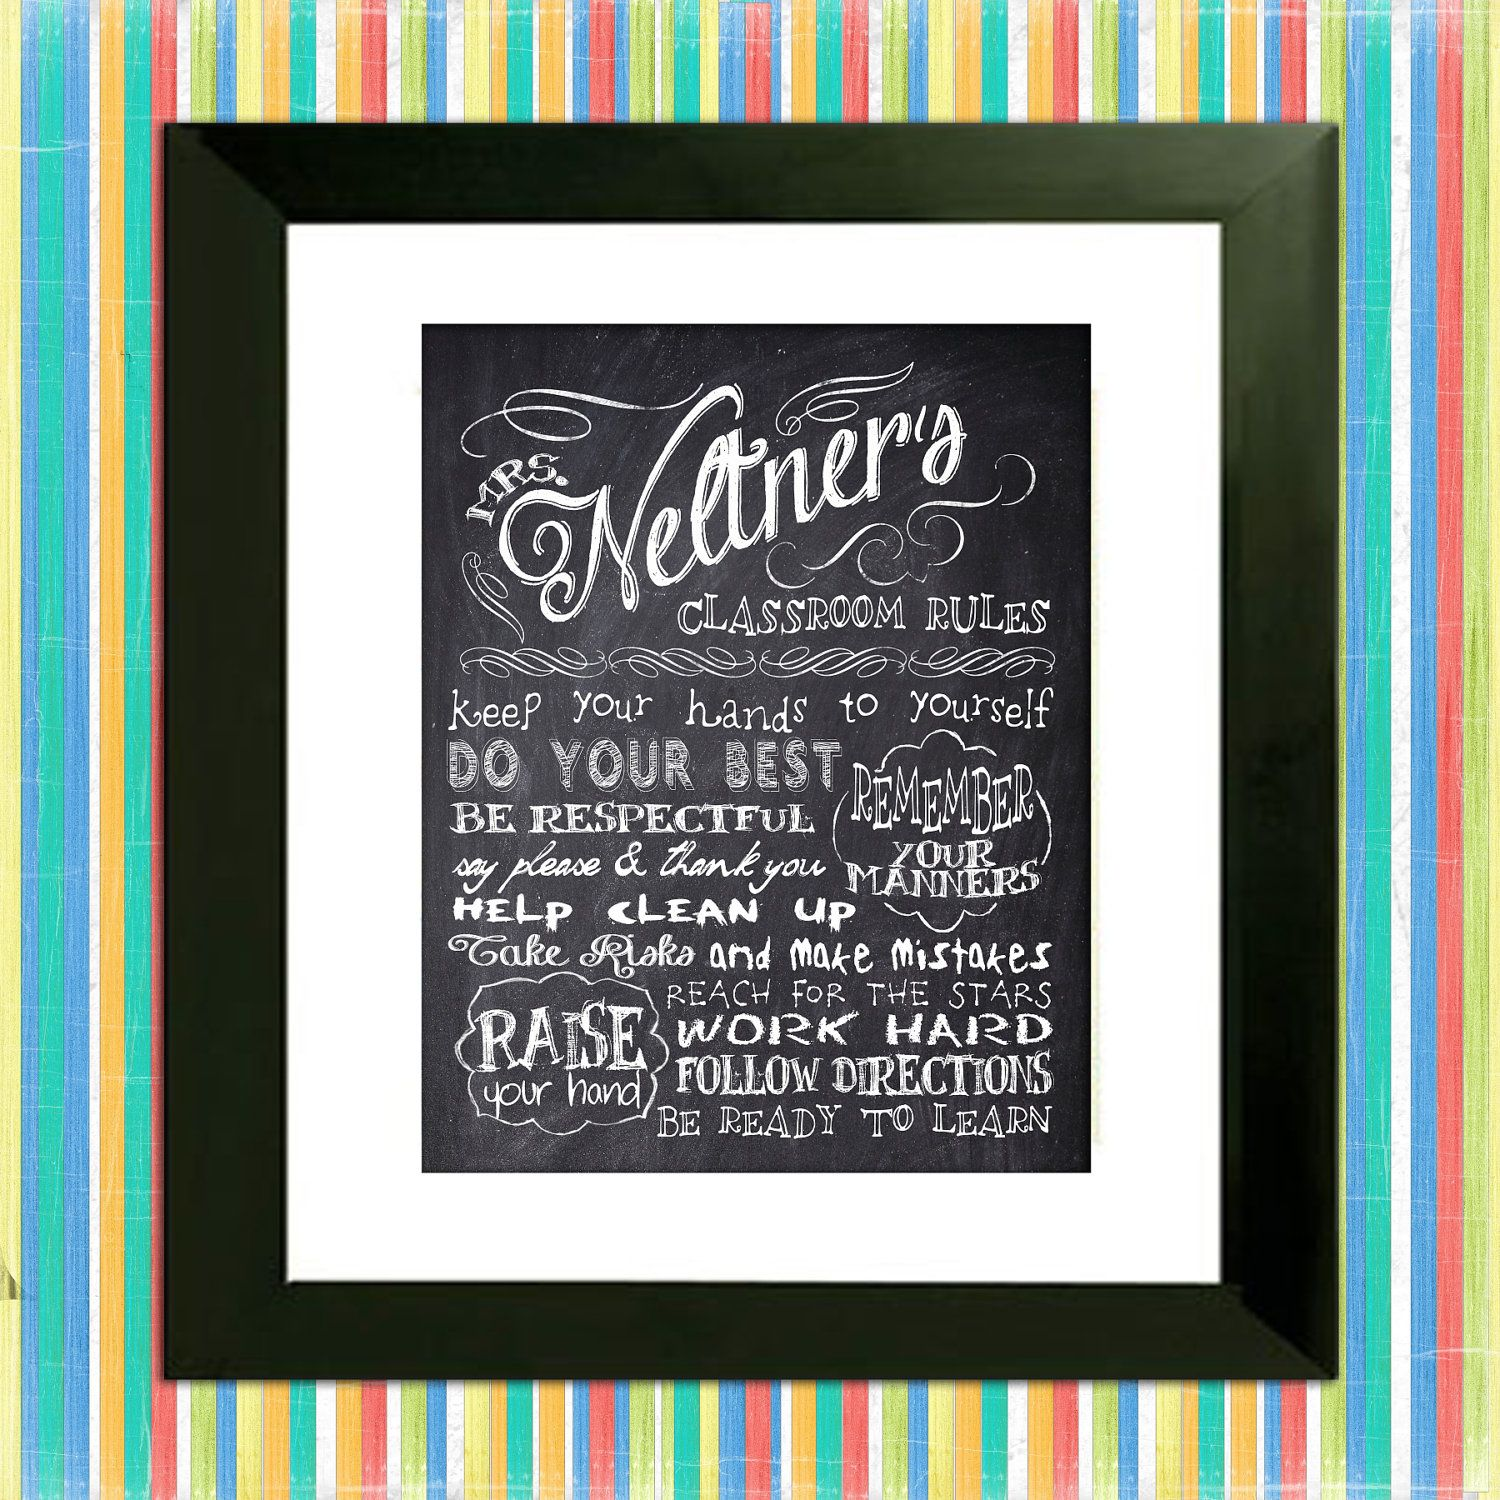 Personalized chalkboard teachers classroom rules custom subway